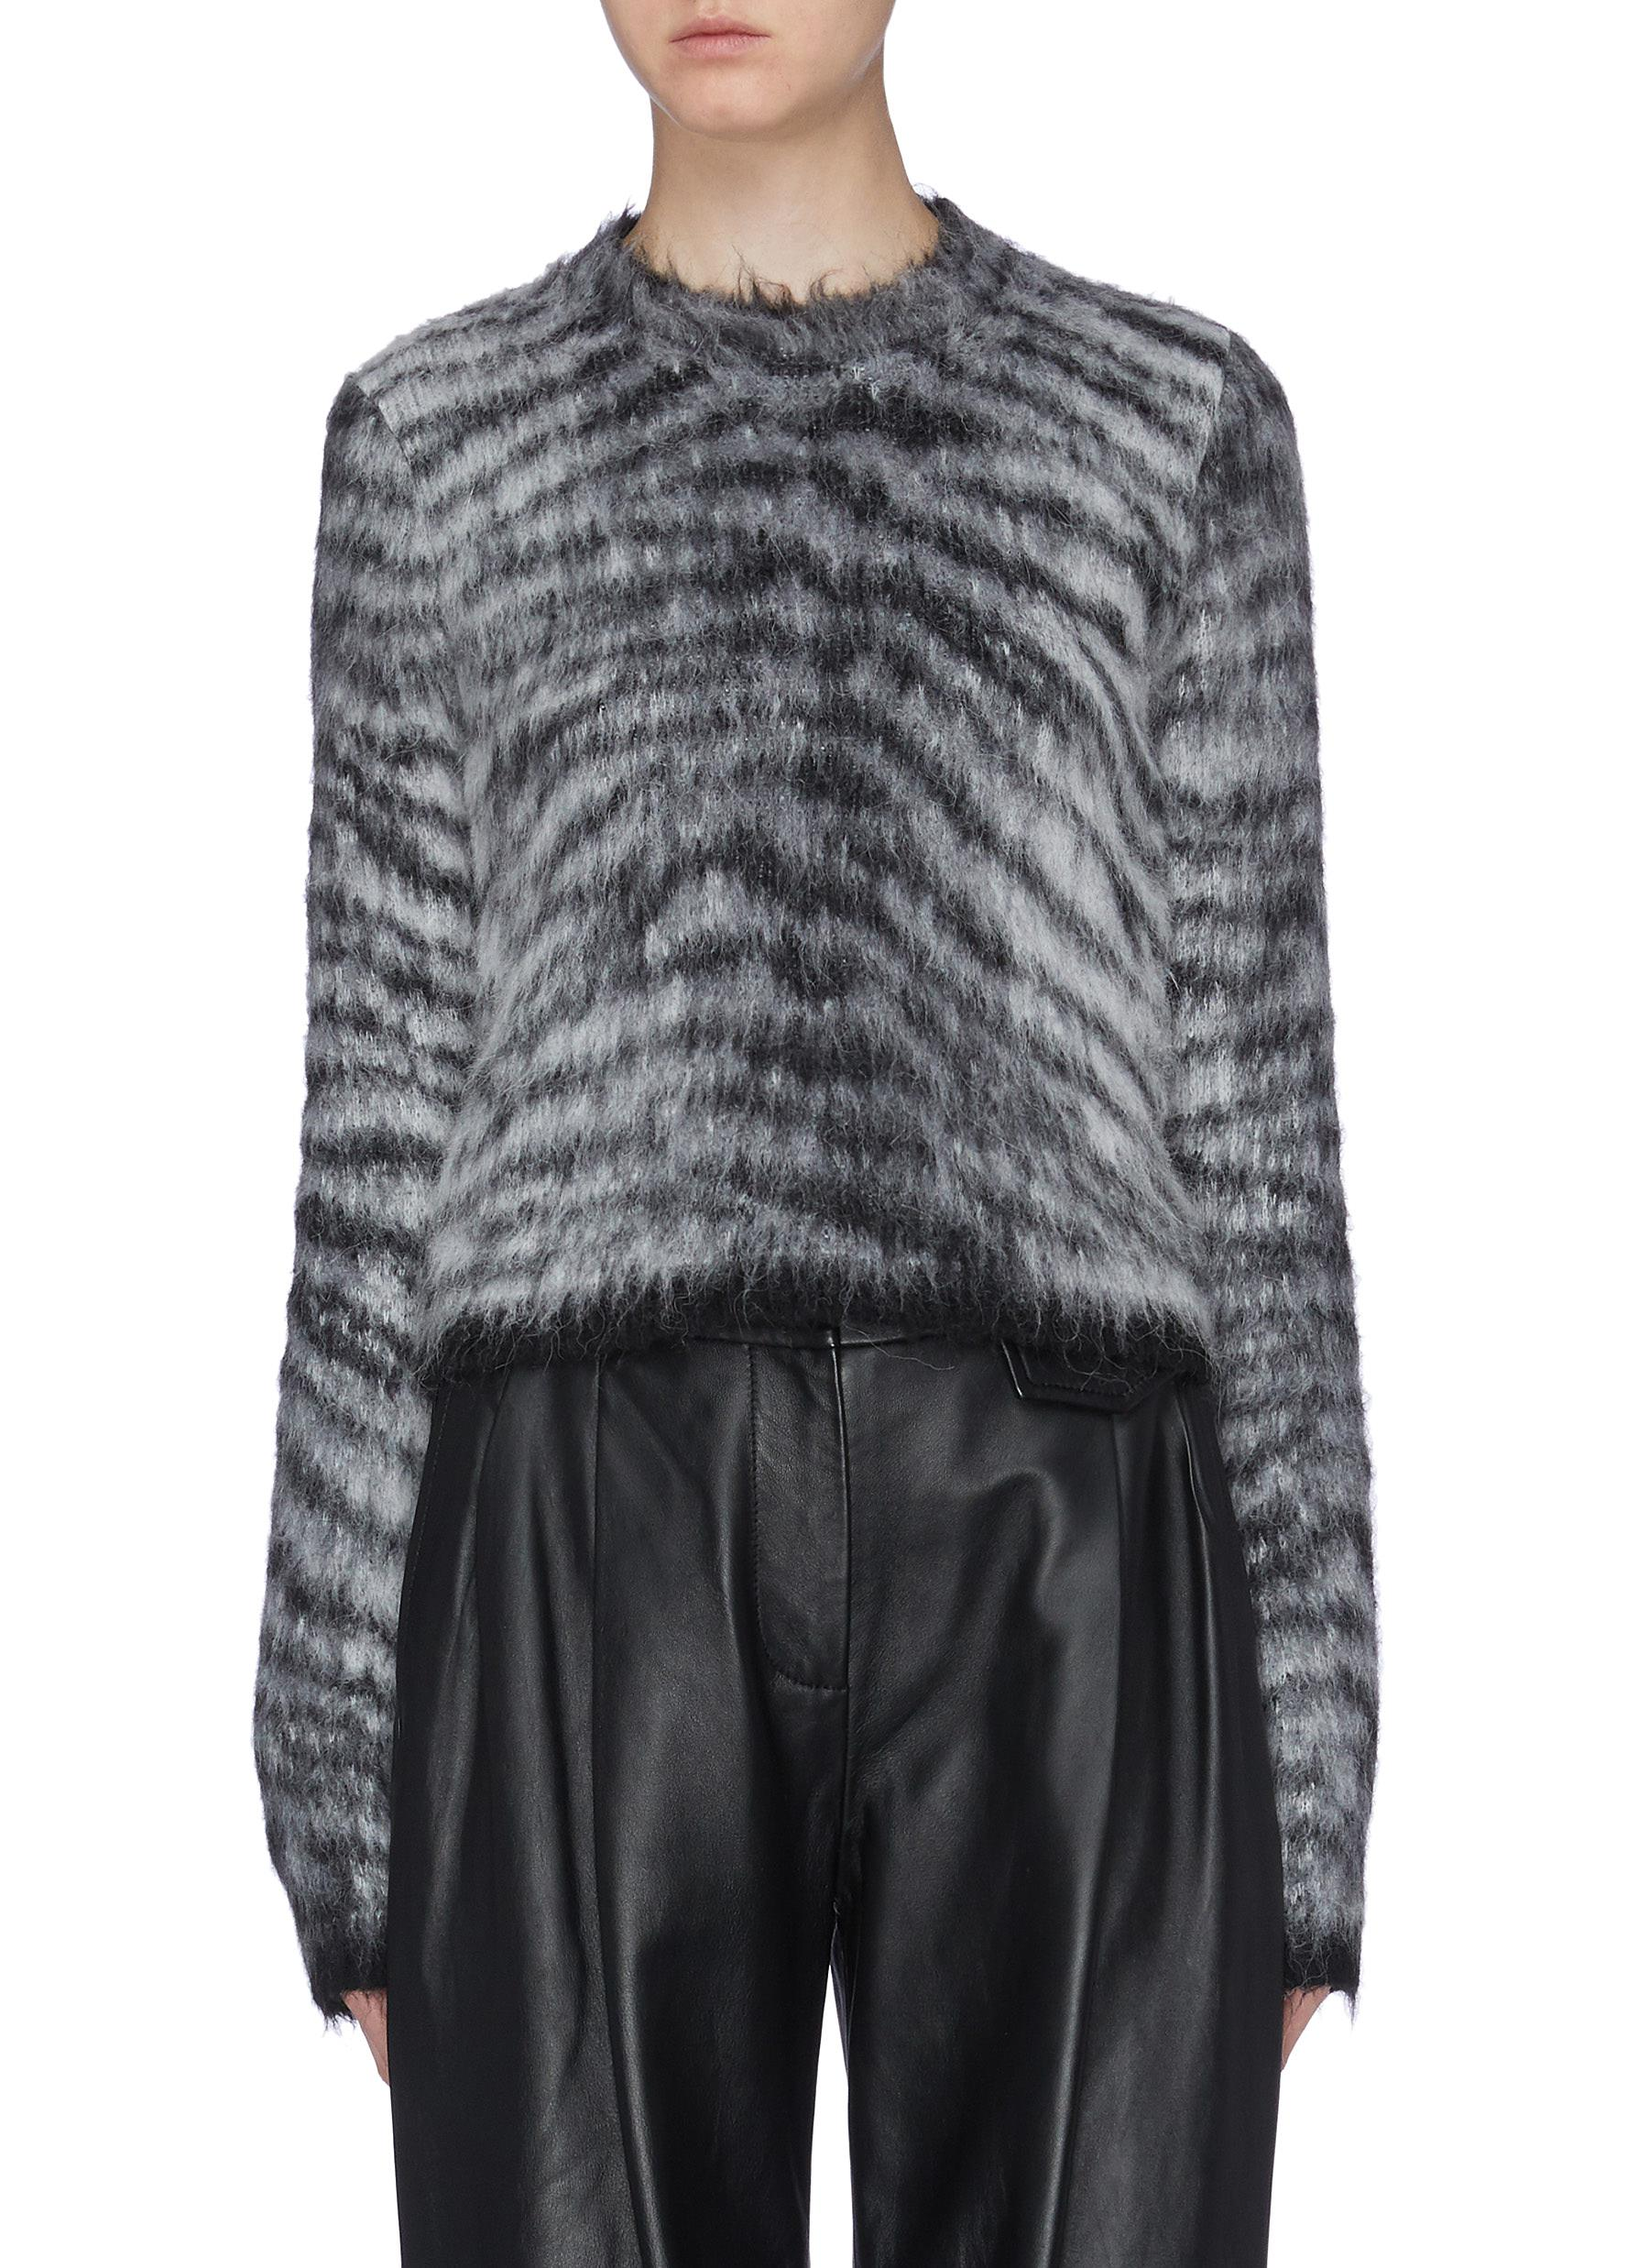 Tiger stripe cropped brushed sweater by Acne Studios